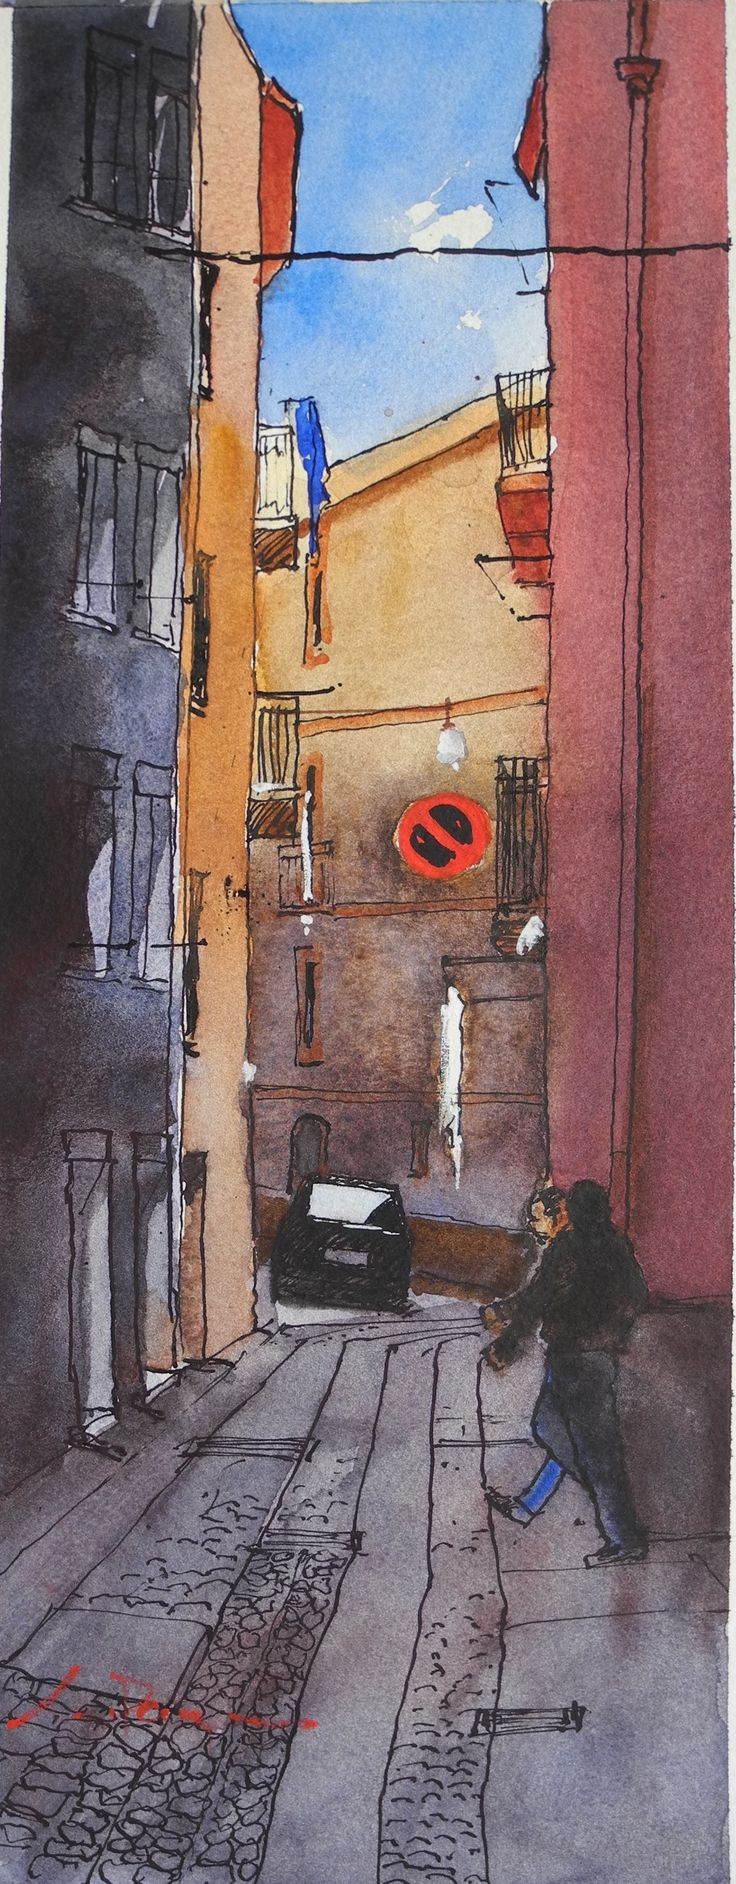 "Another Bosa Street scene. 13x5"" Pen, ink and watercolour."